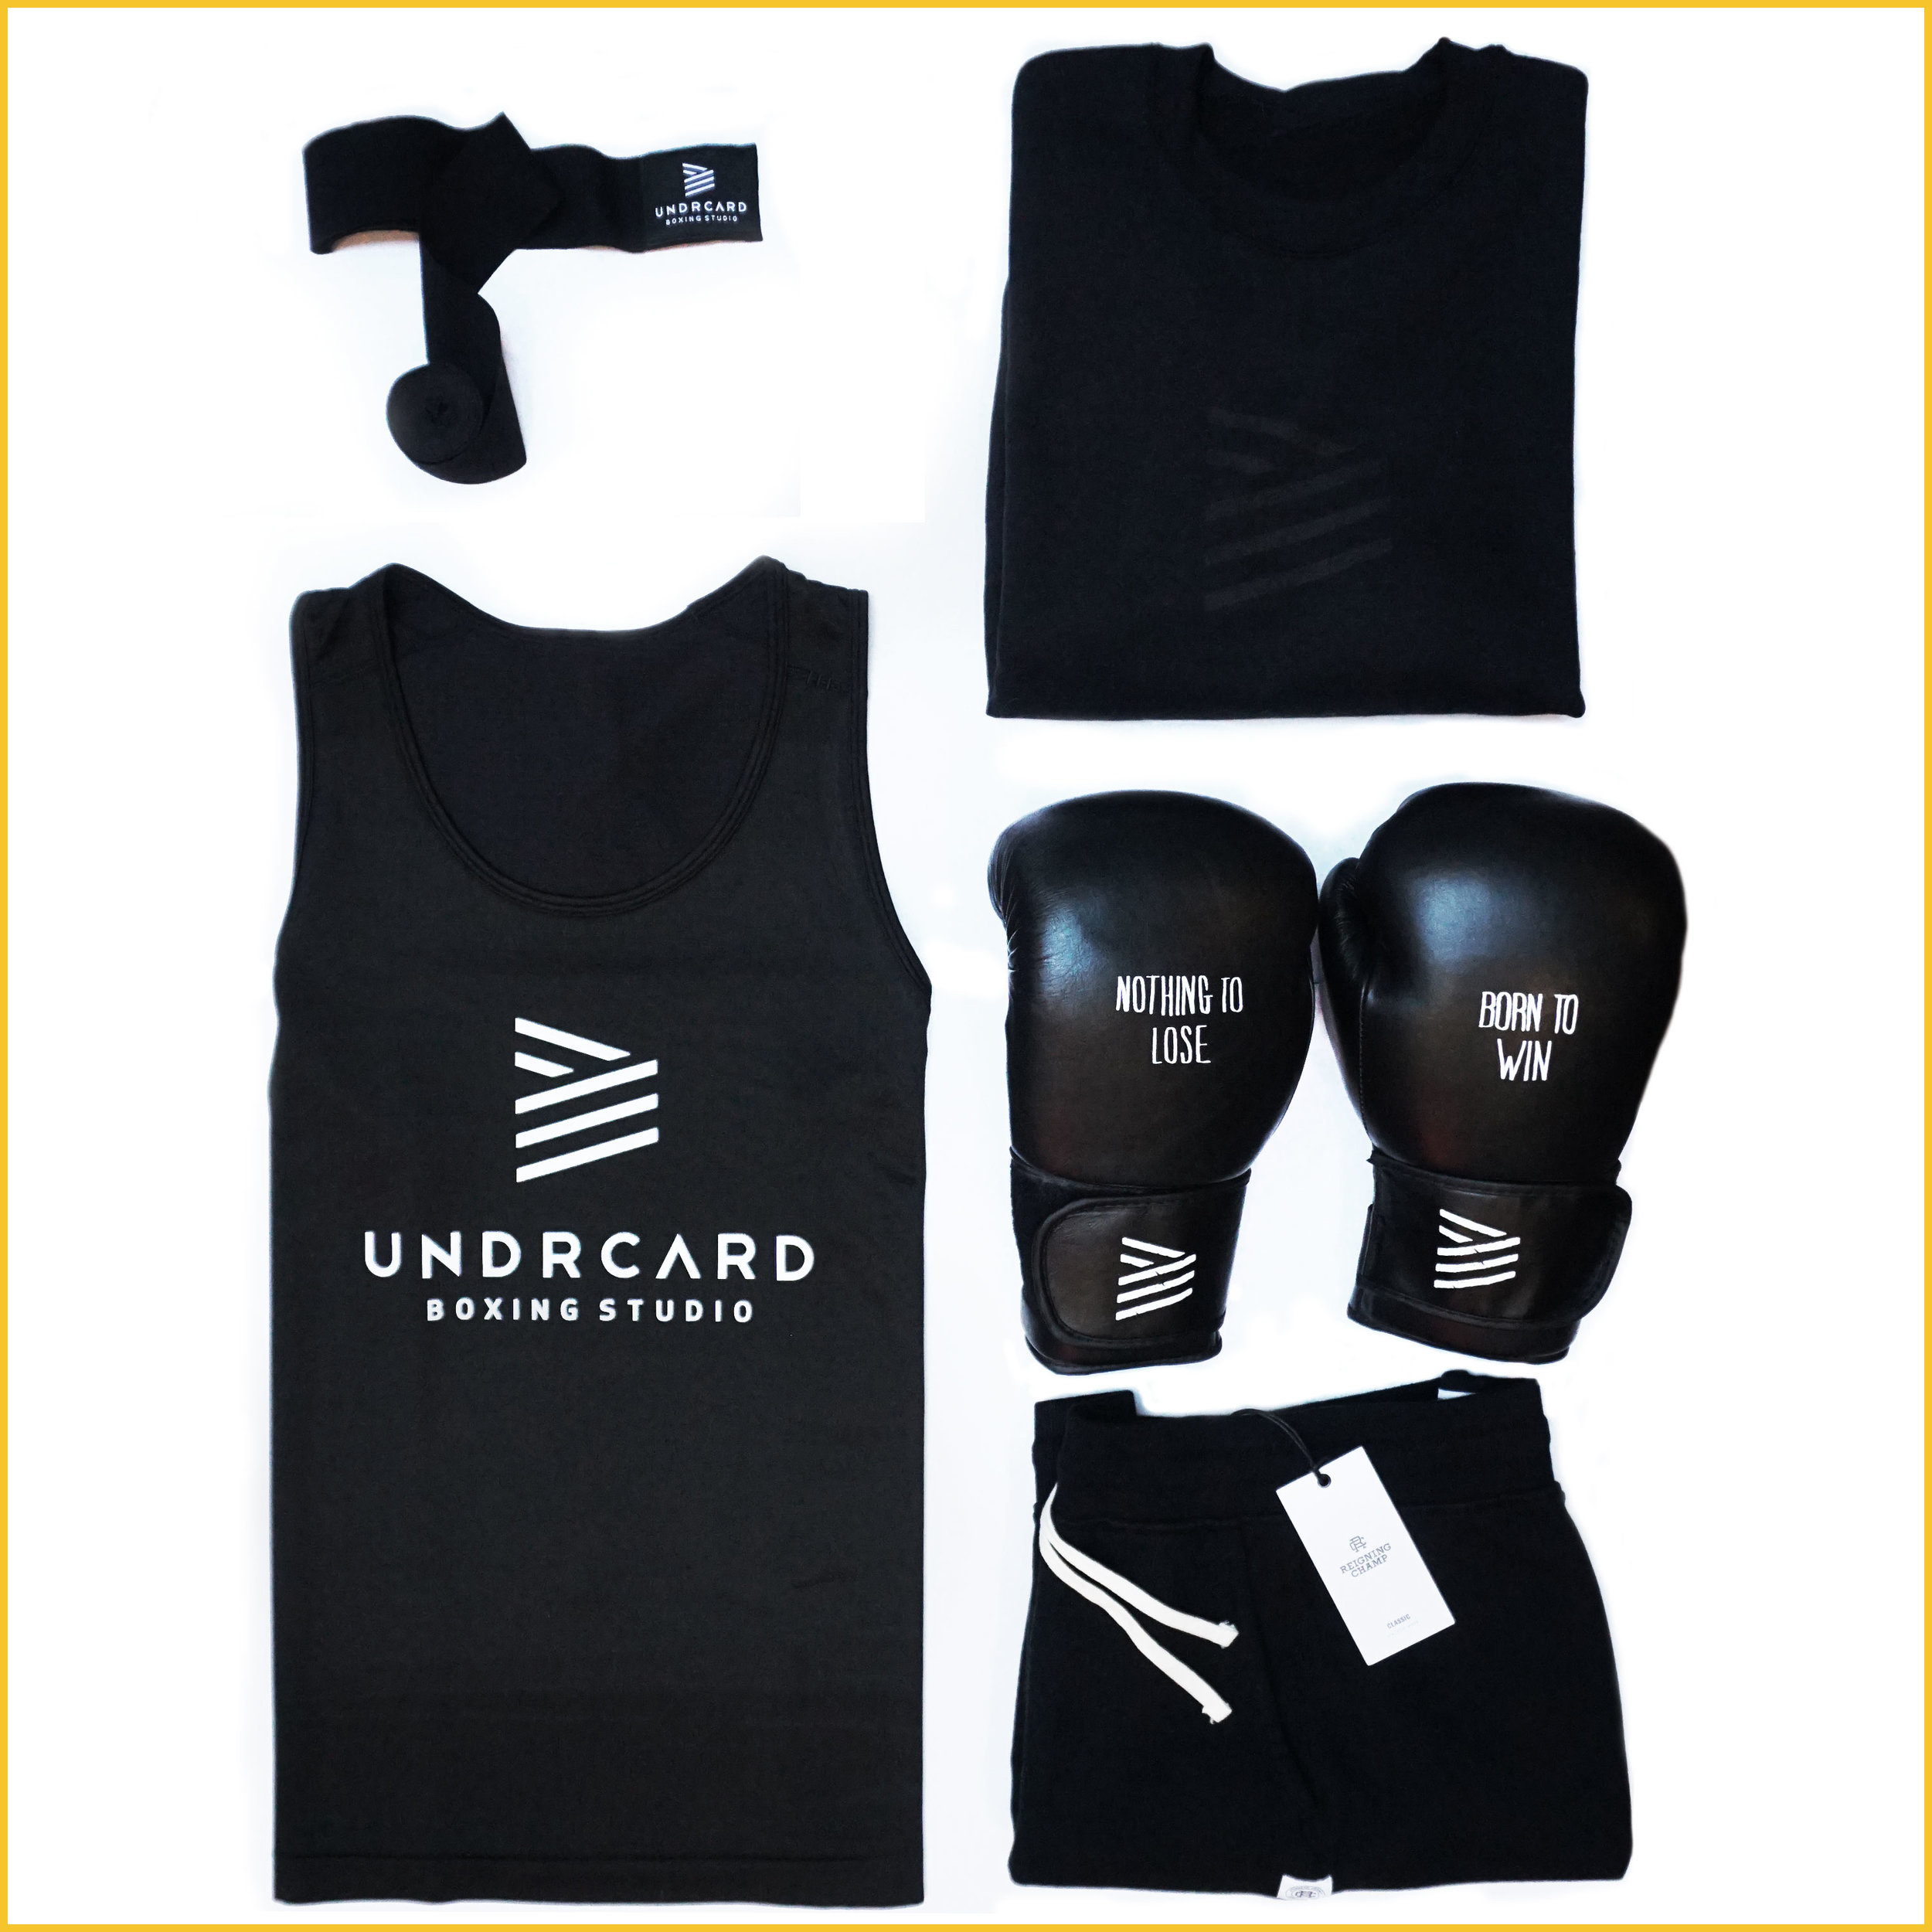 THE REBEL  We have the complete line-up for the health goth in your life.  UNDRCARD Stealth Crew ,  UNDRCARD hand wraps ,  Lululemon men's metal vent tank top ,  Reigning Champ shorts ,  UNDRCARD Born to Win gloves .